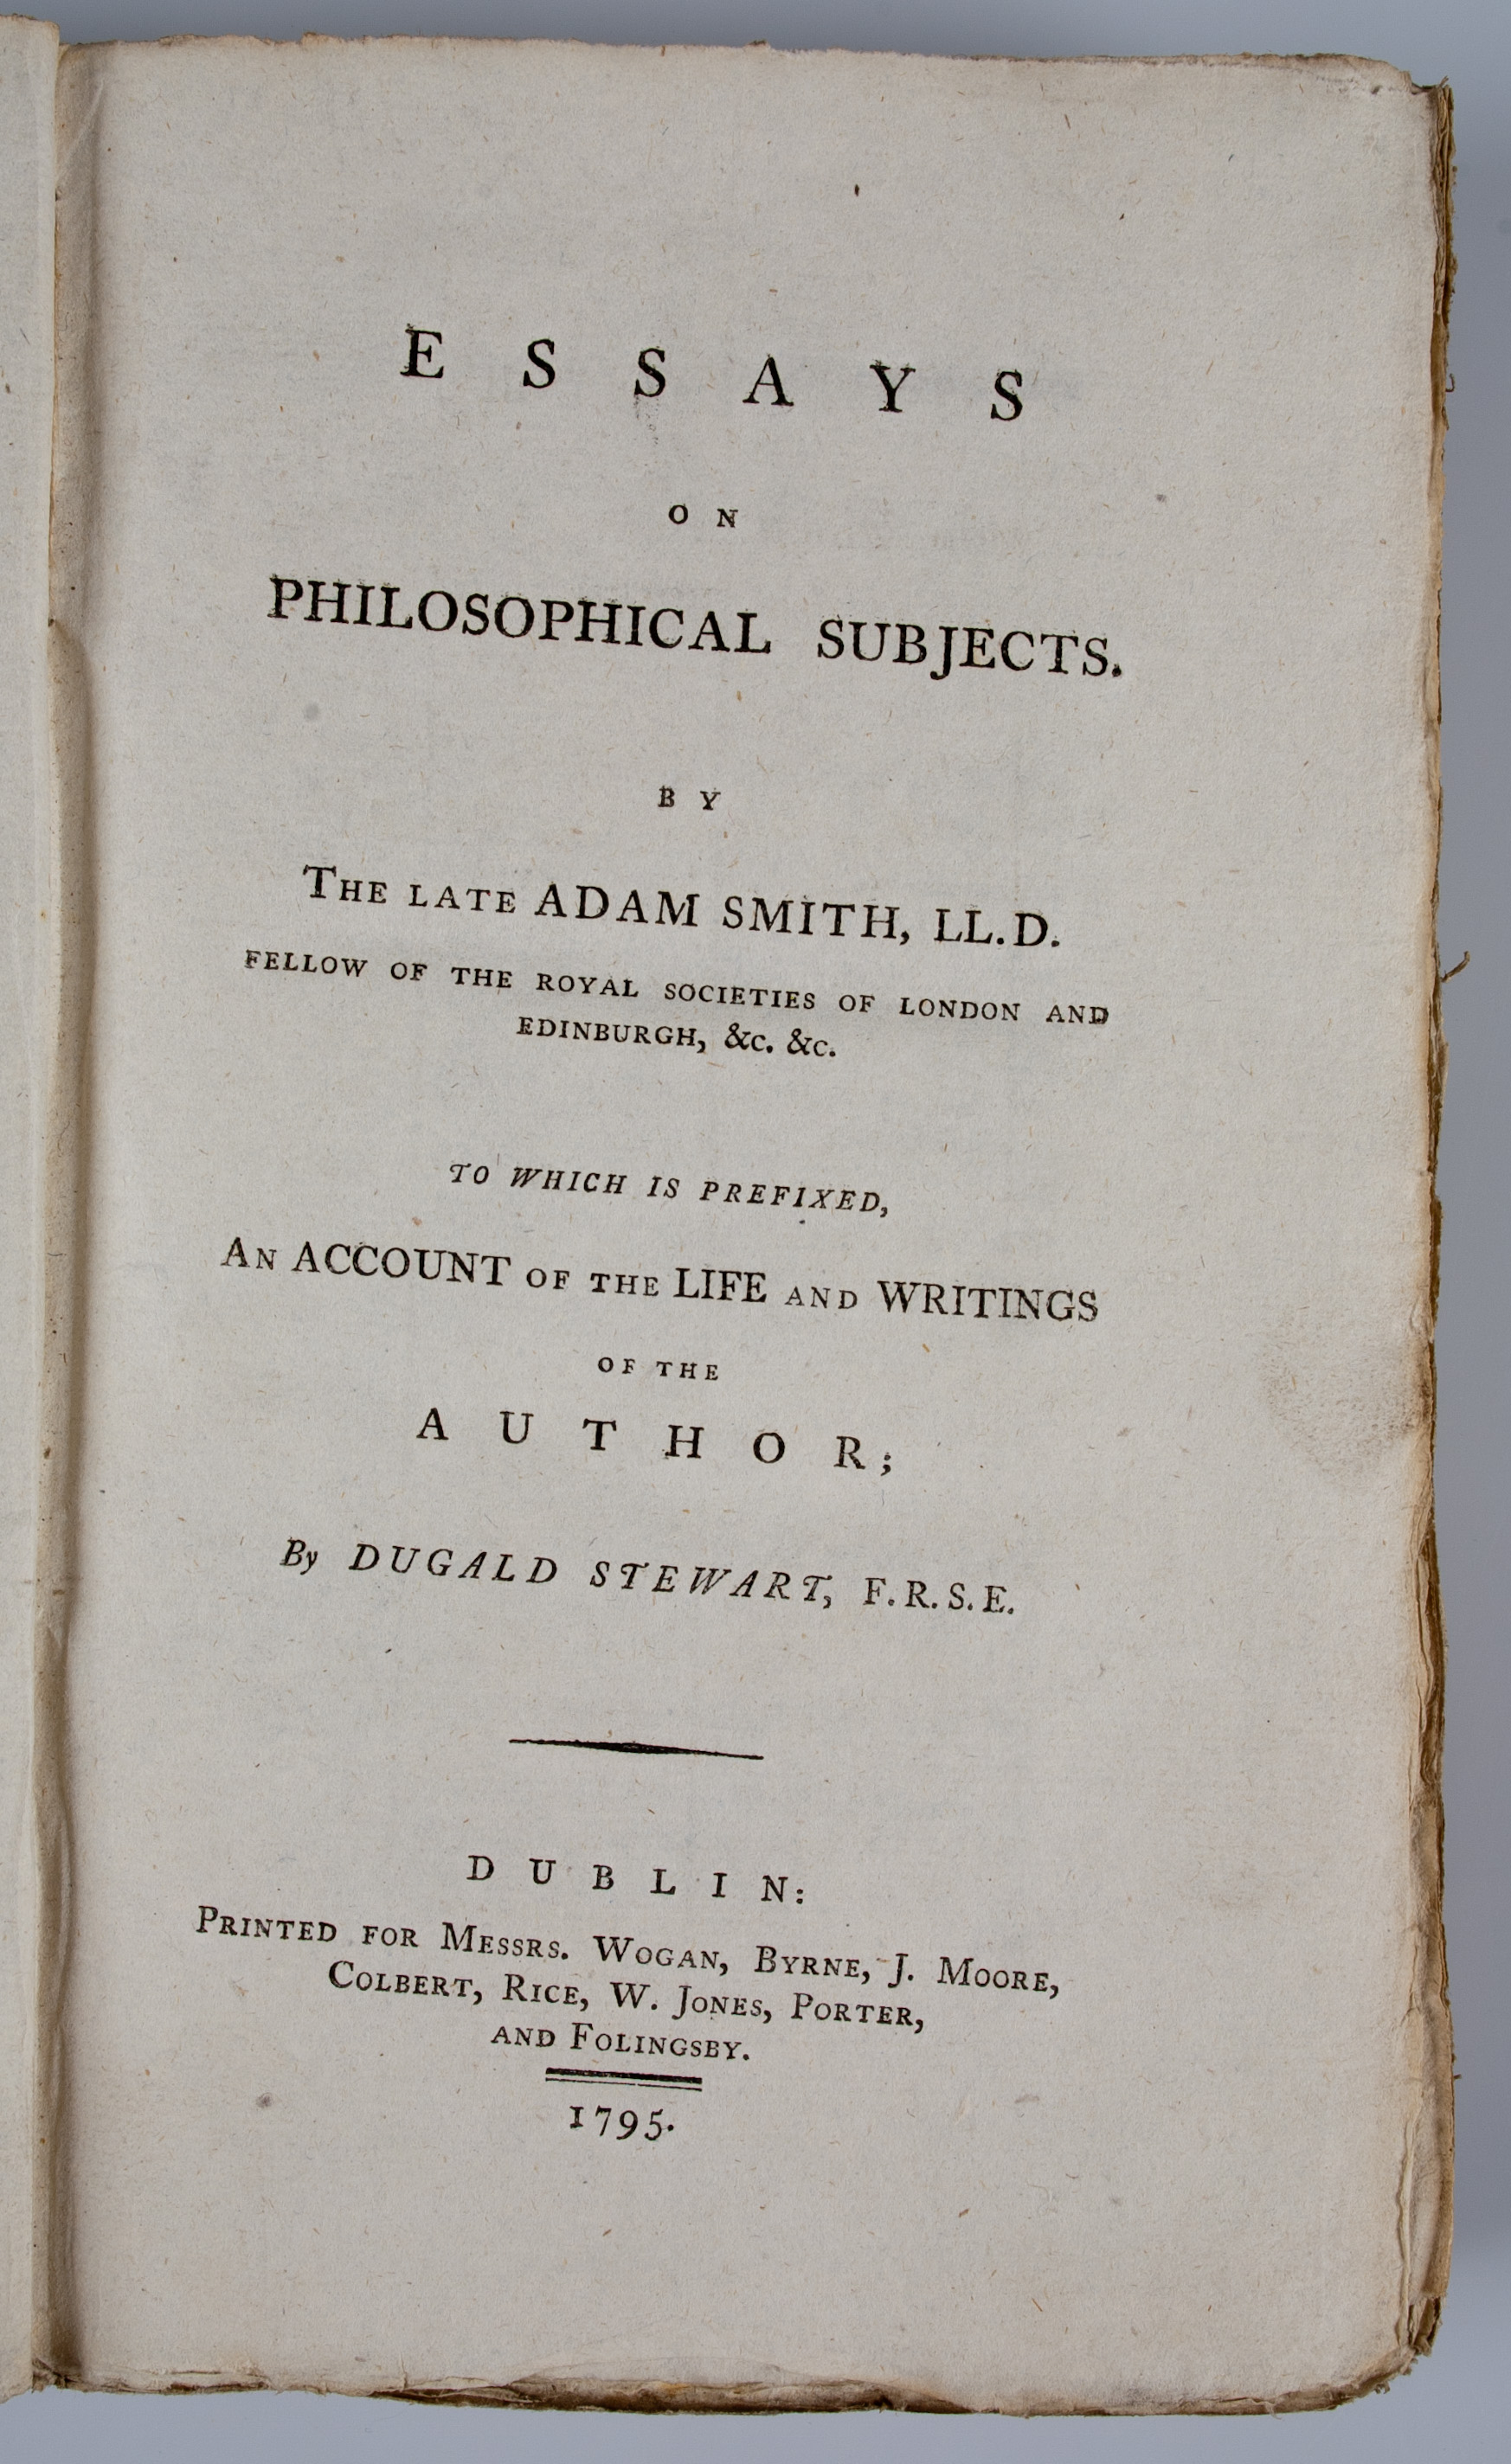 002 Essays On Philosophical Subjects Essay Example 54130 02 Best Smith Pdf Full